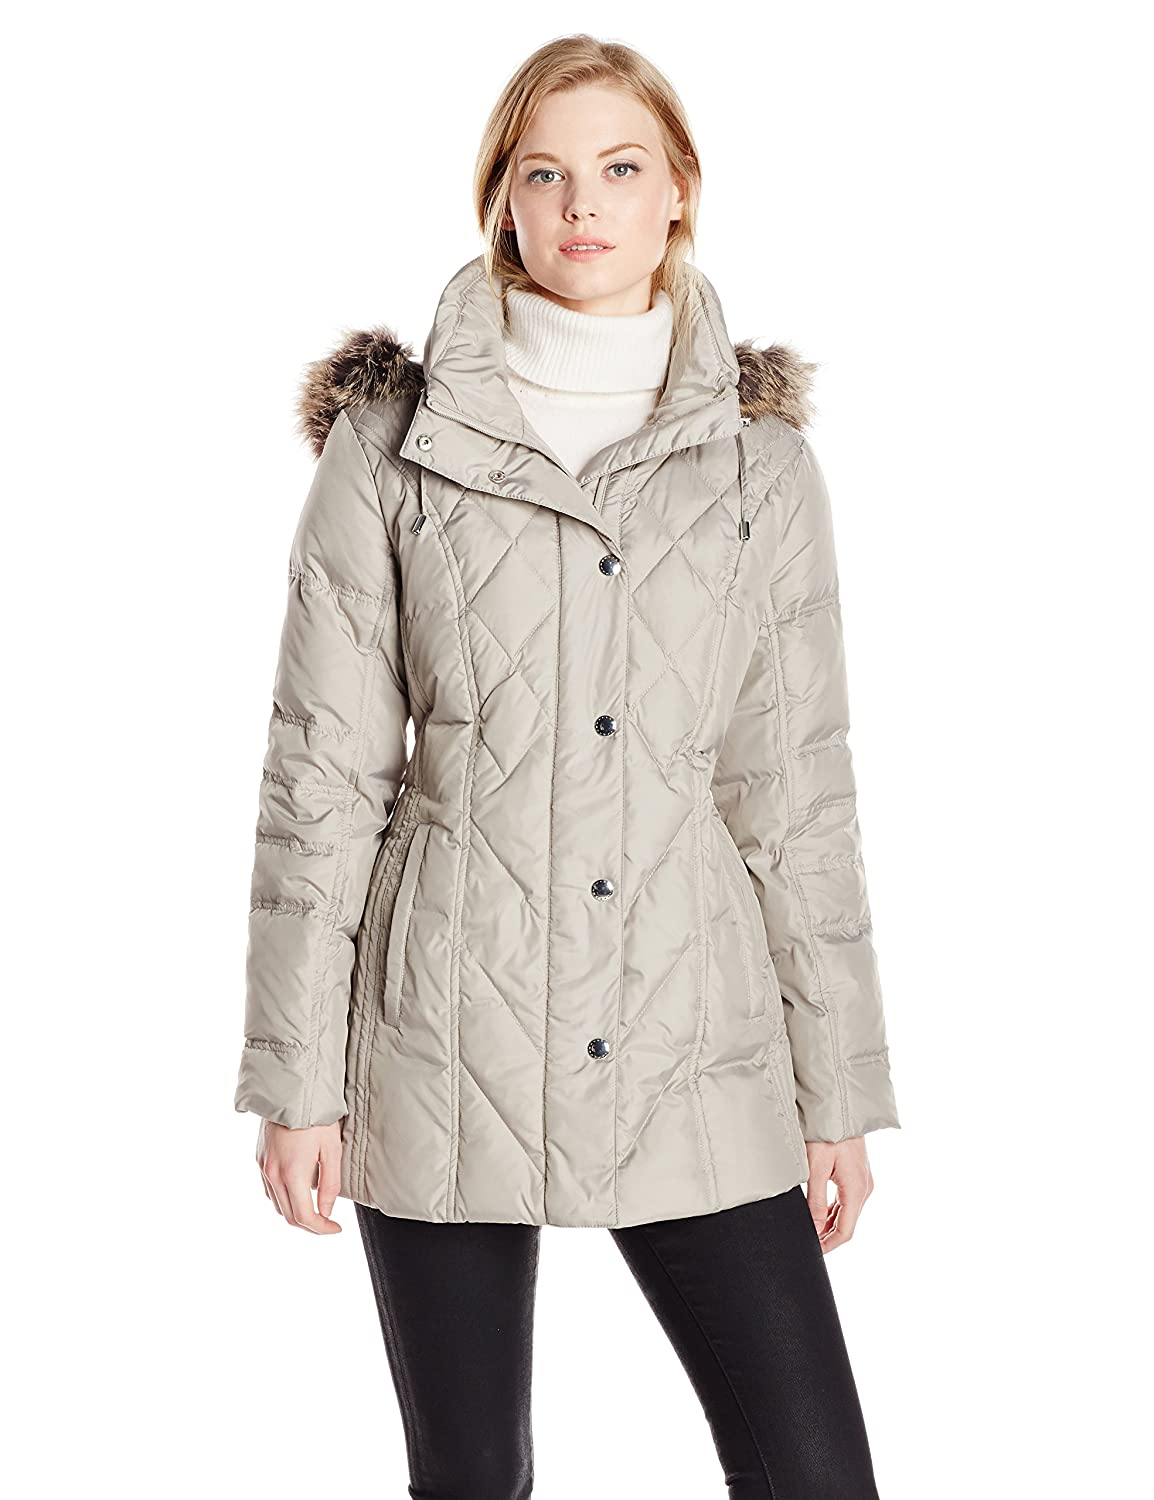 London Fog Women's Packable Down Quilted Coat L820627F74